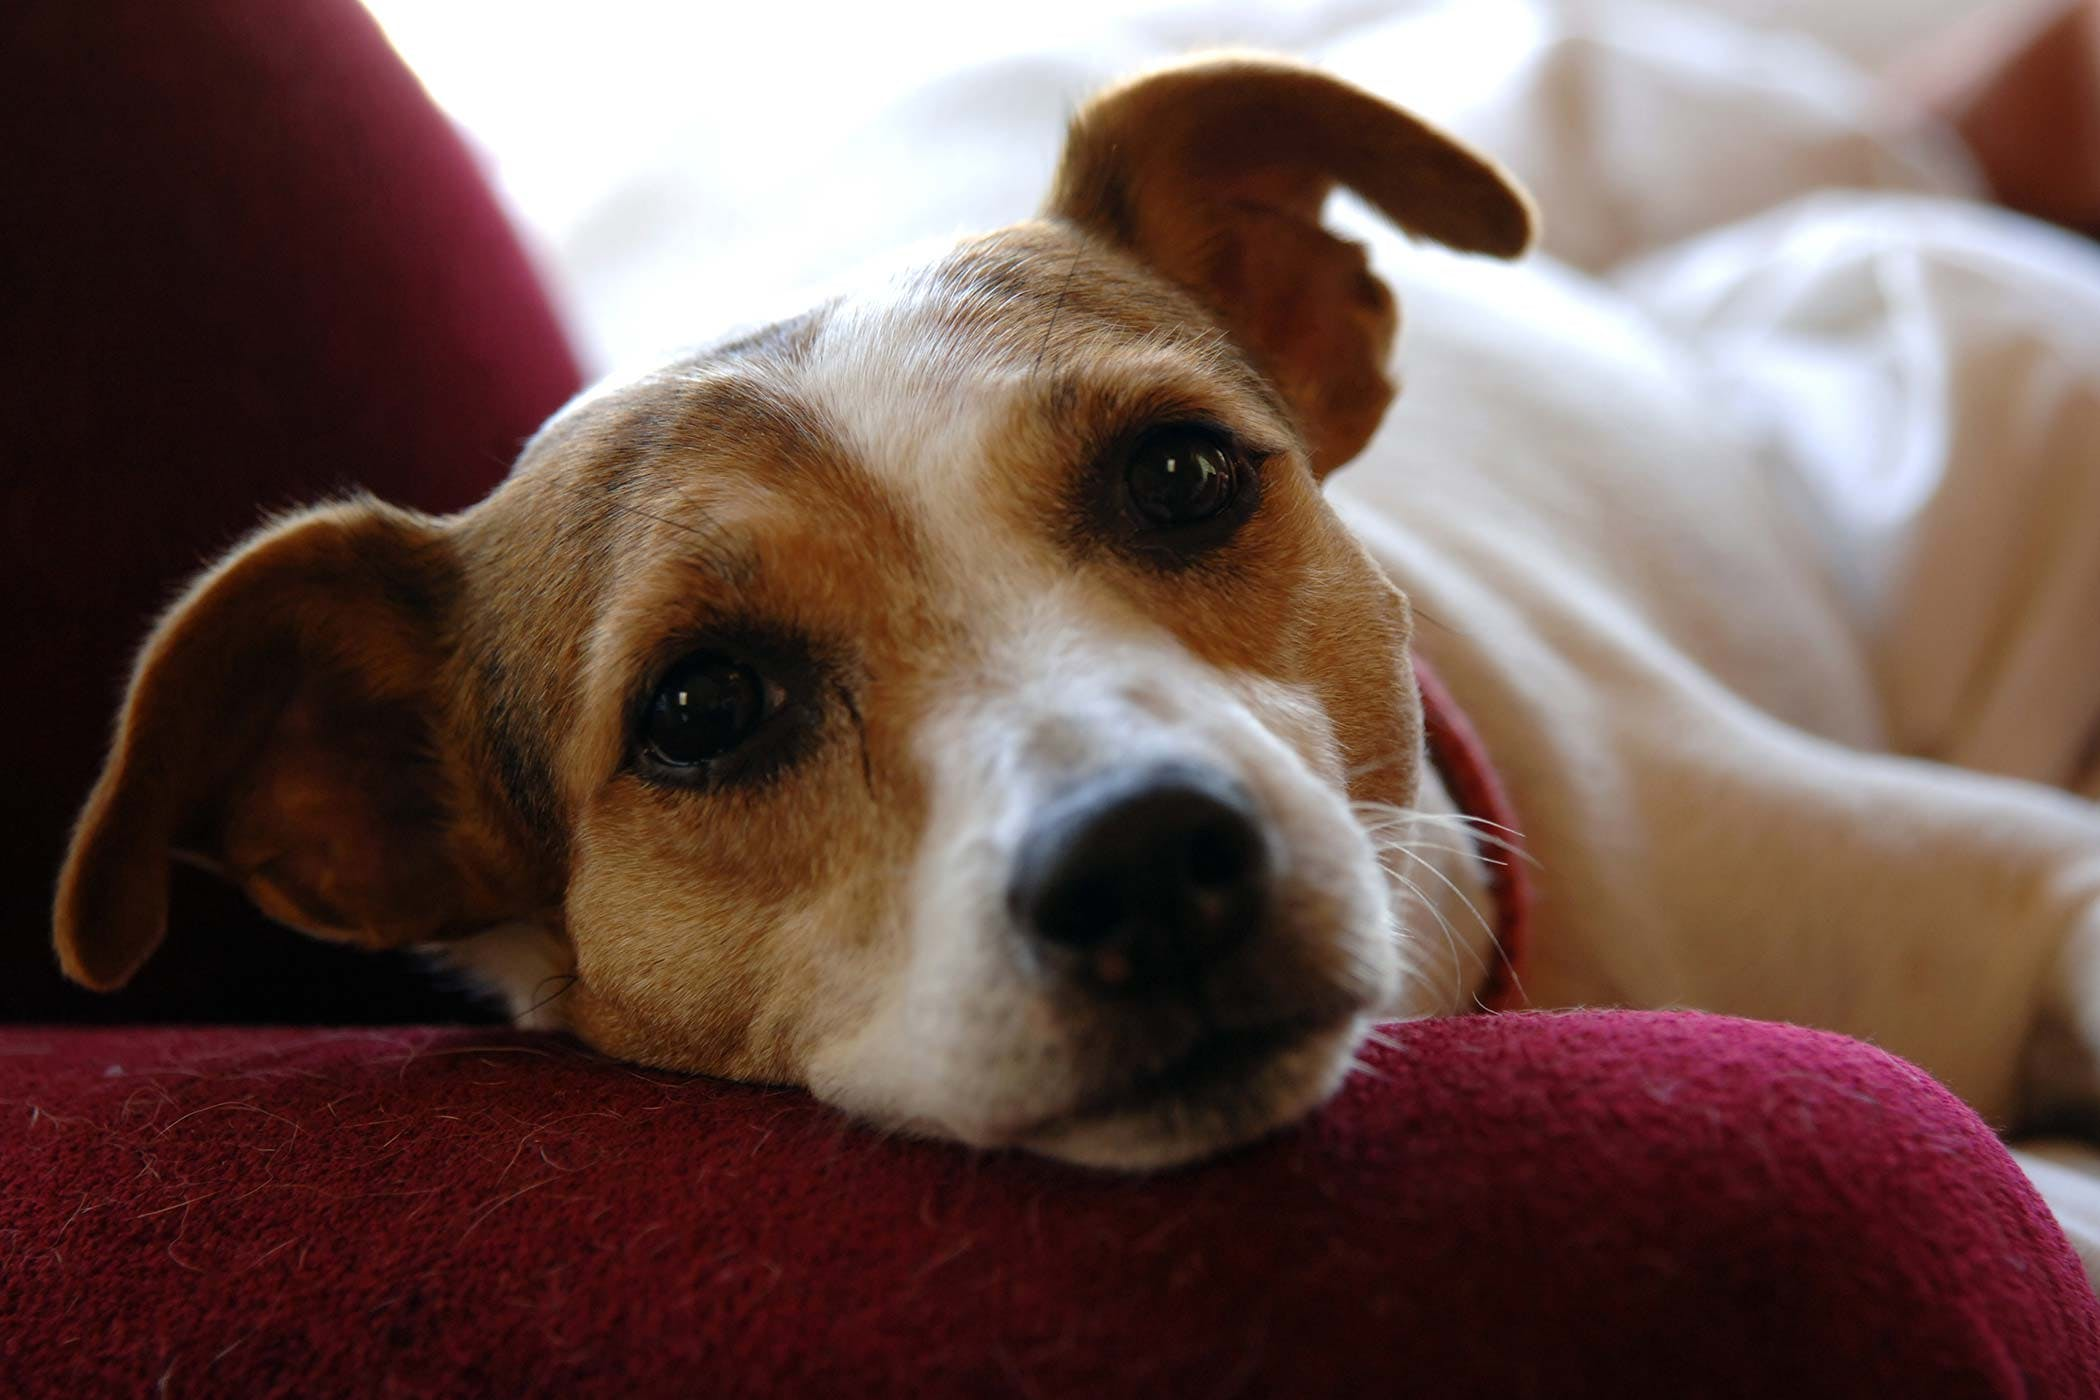 Jack Russell Terrier Allergies in Dogs - Symptoms, Causes